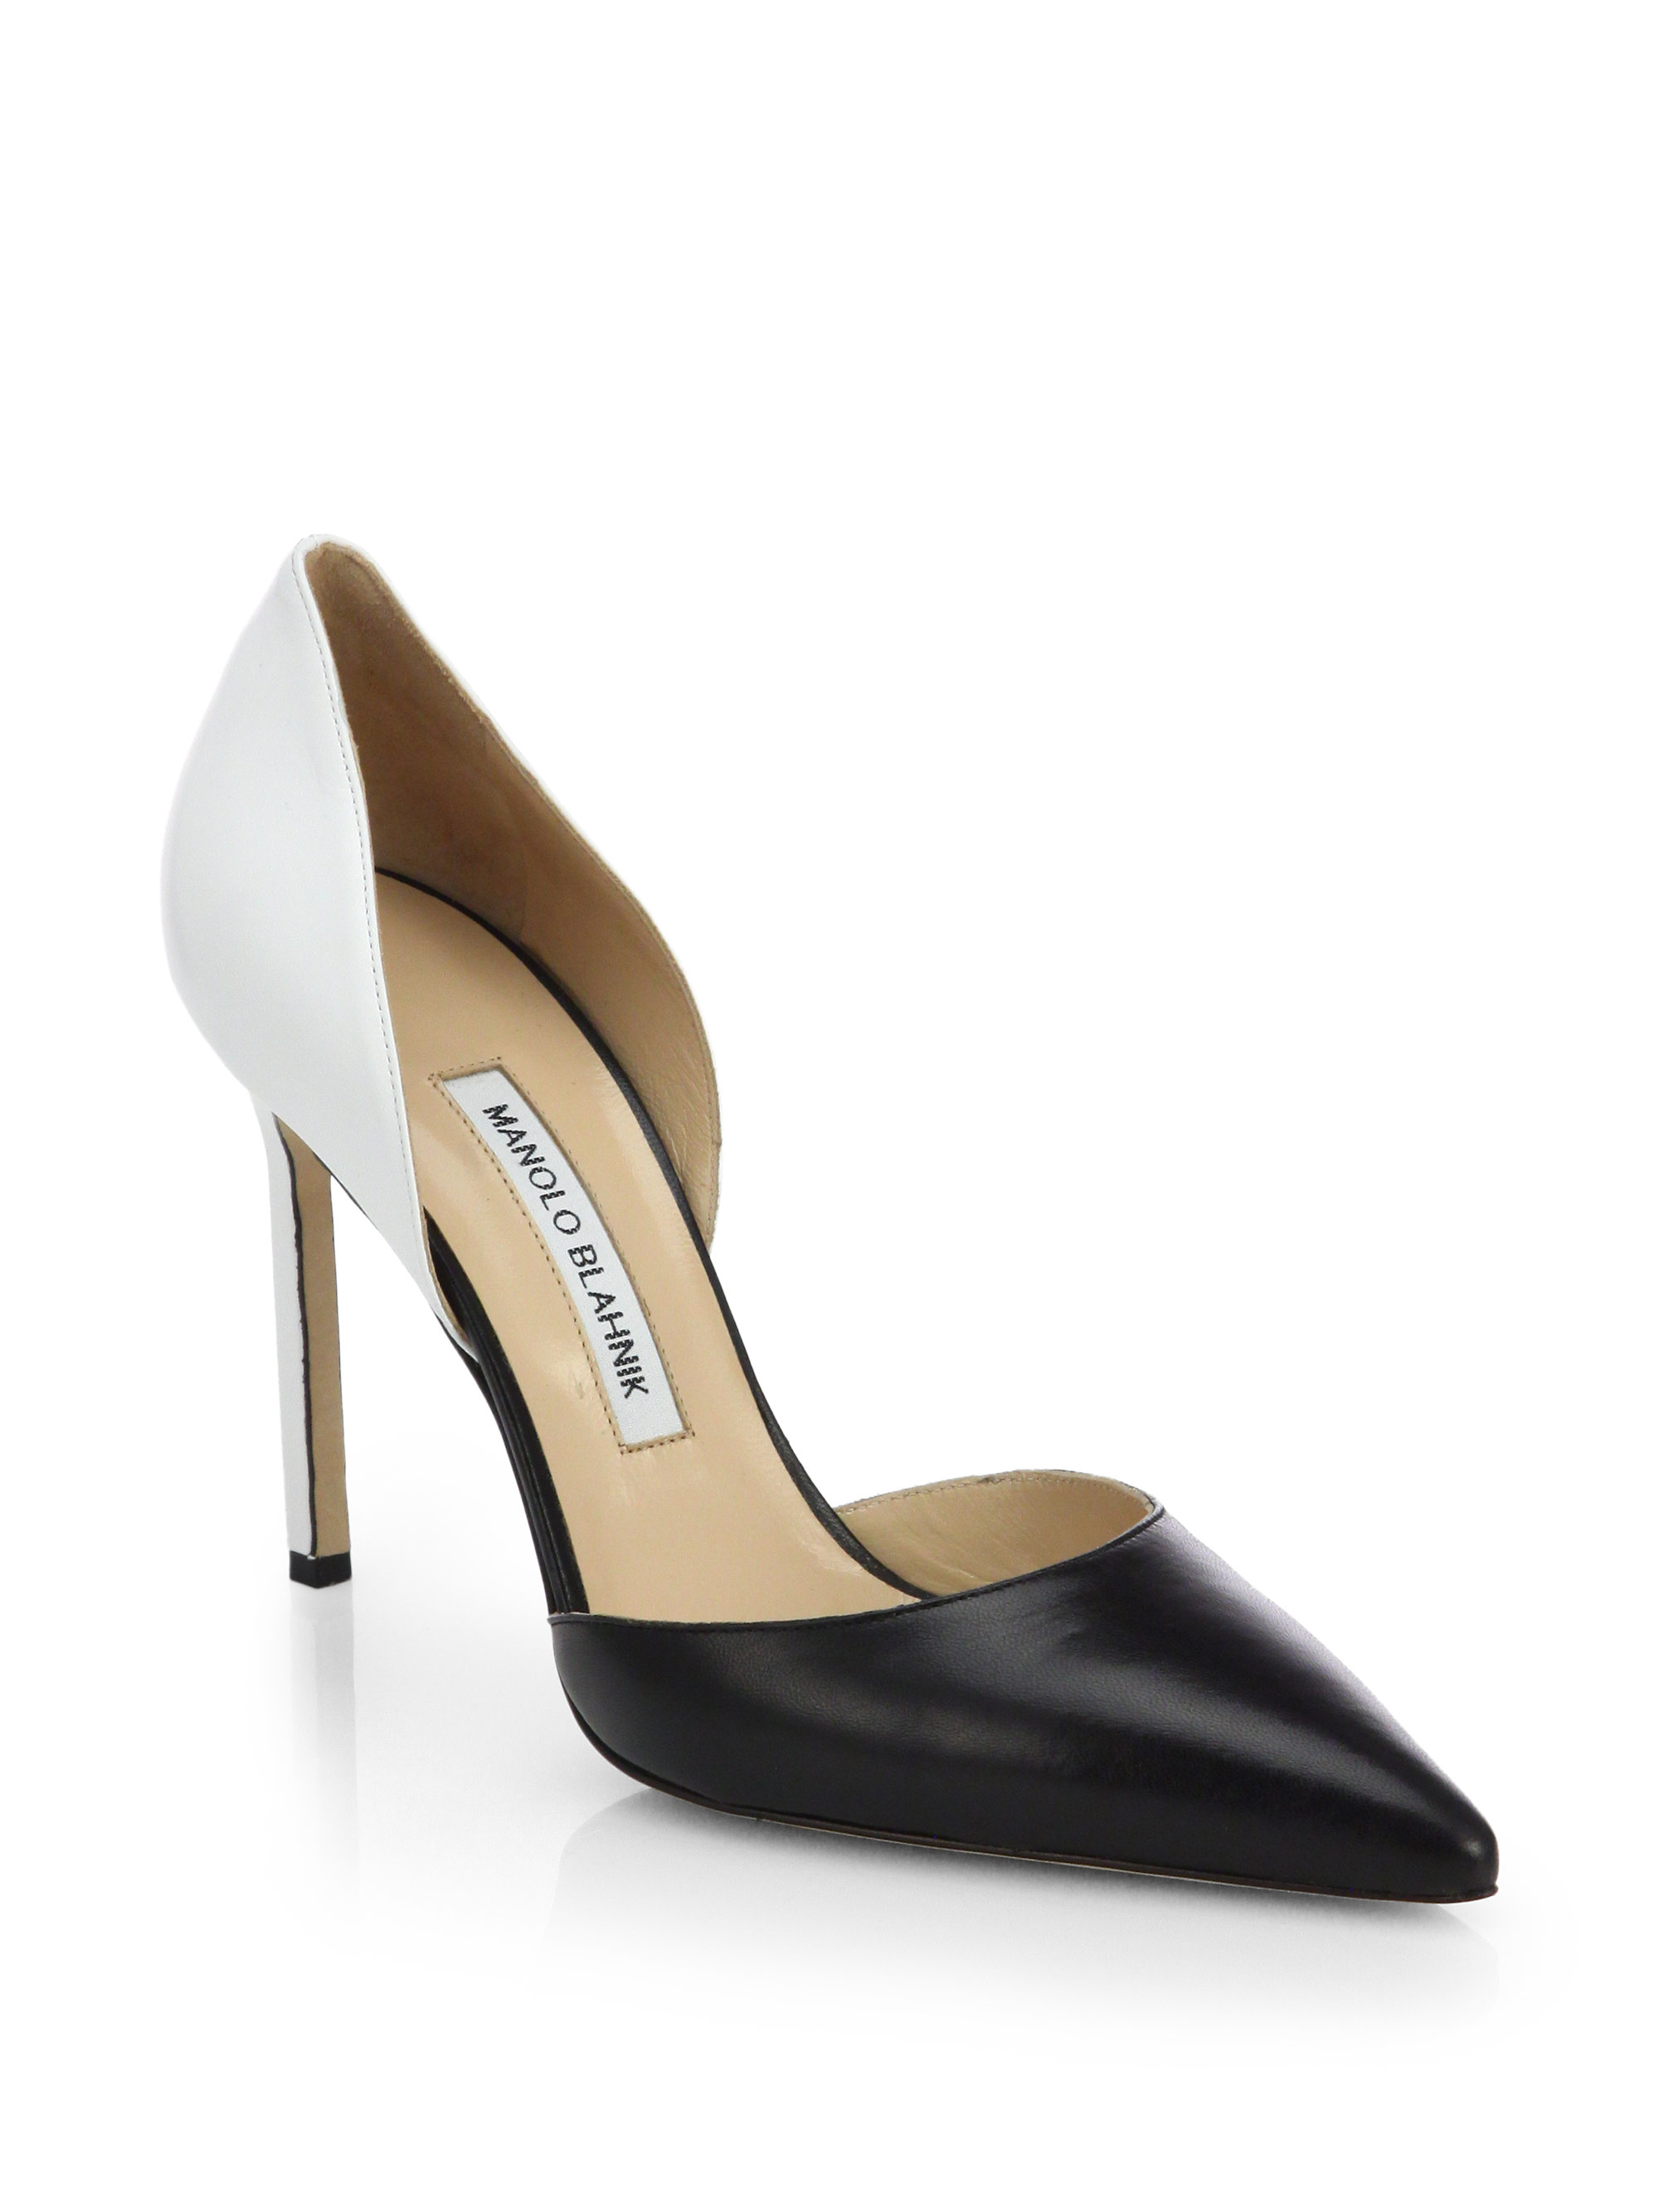 White Women's Shoes: truedfil3gz.gq - Your Online Women's Shoes Store! Get 5% in rewards with Club O!